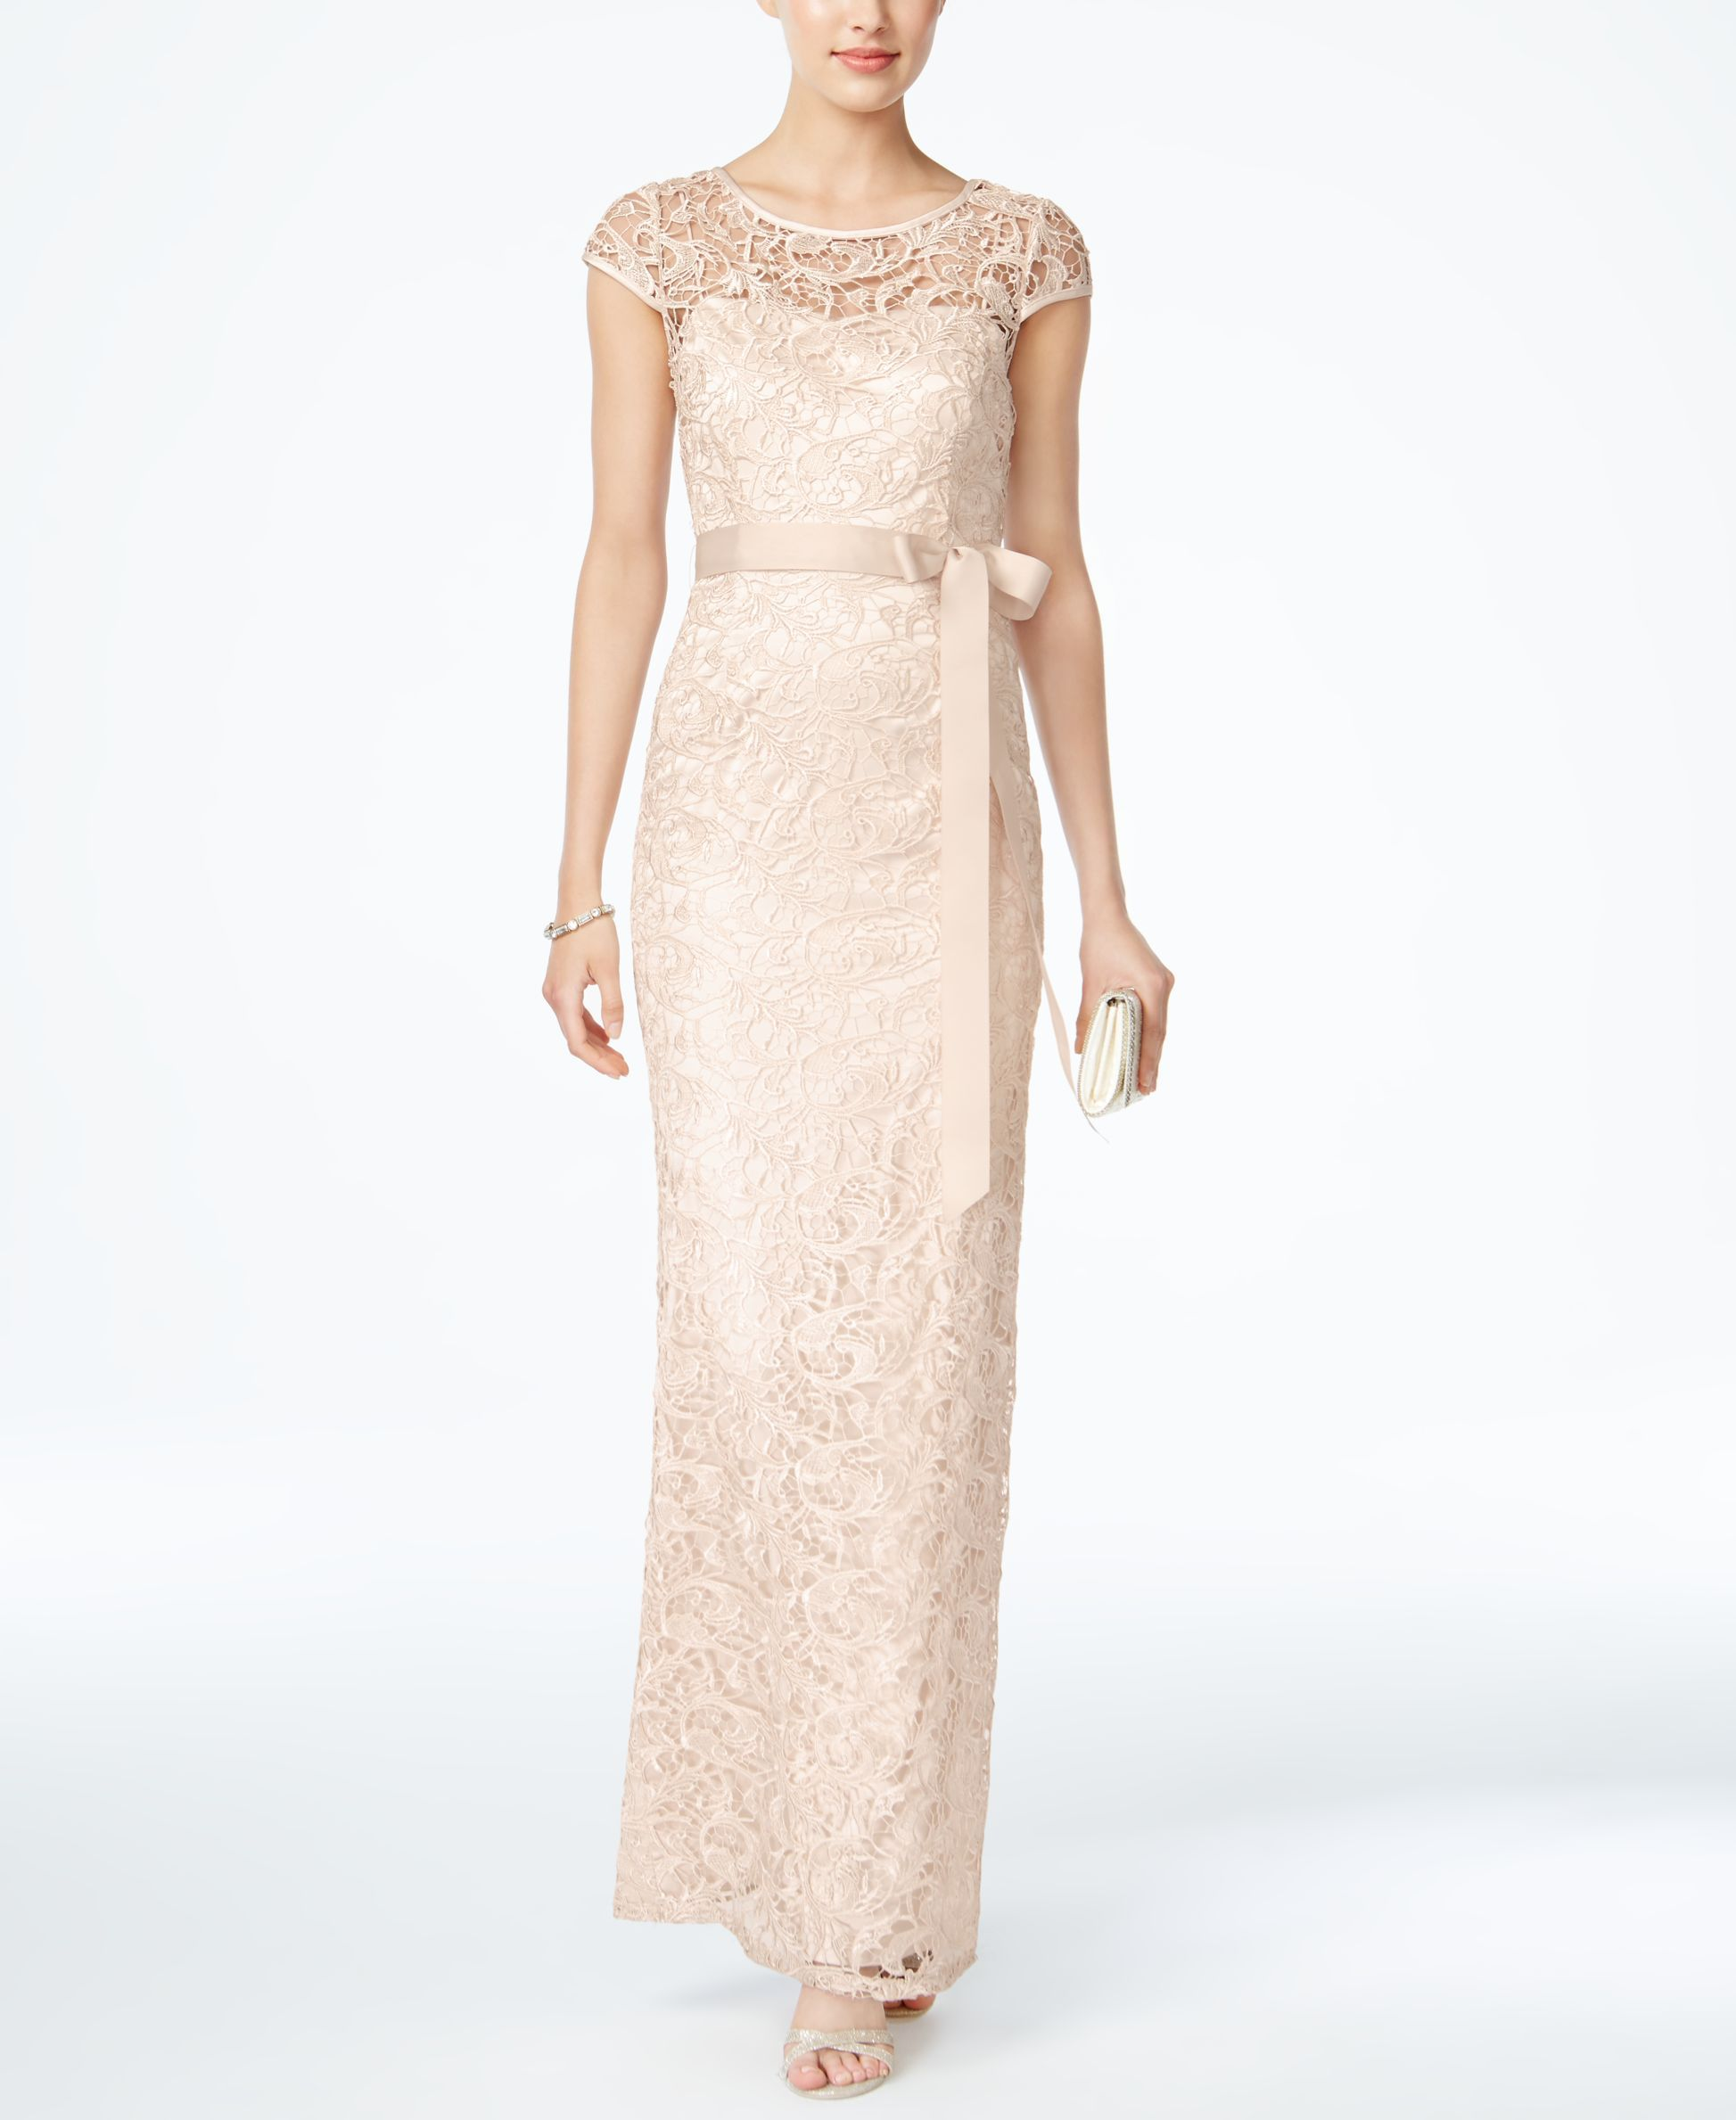 Cap-Sleeve Illusion Lace Gown | Products | Pinterest | Adrianna ...